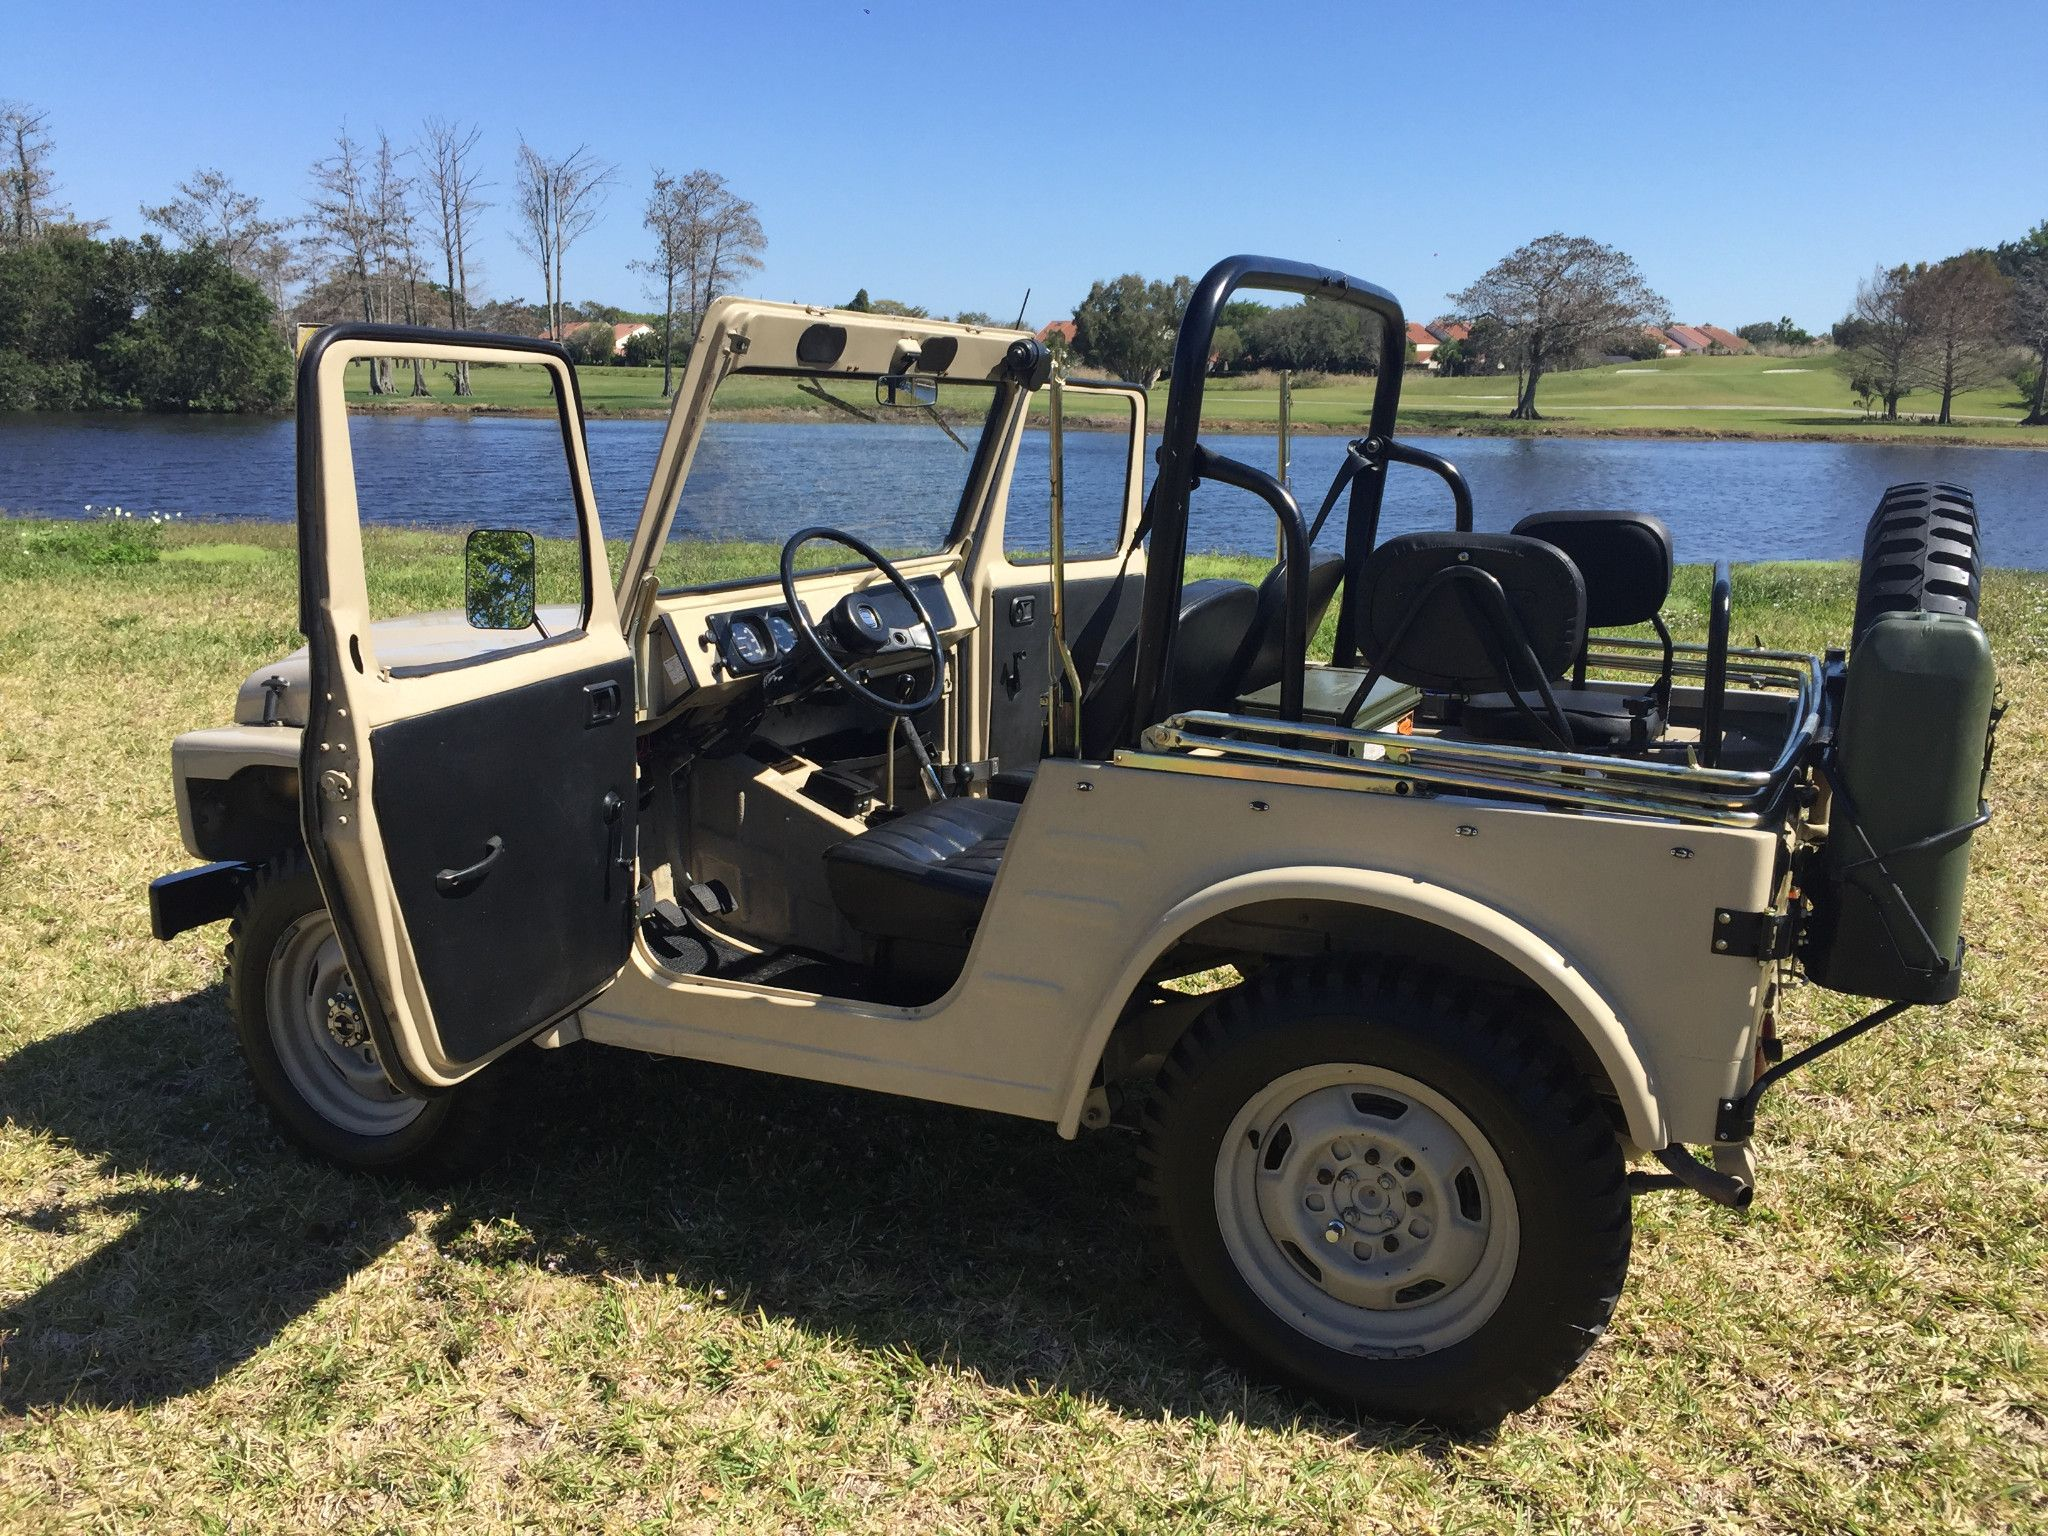 Bid for the chance to own a 1981 Suzuki LJ80 at auction with Bring a